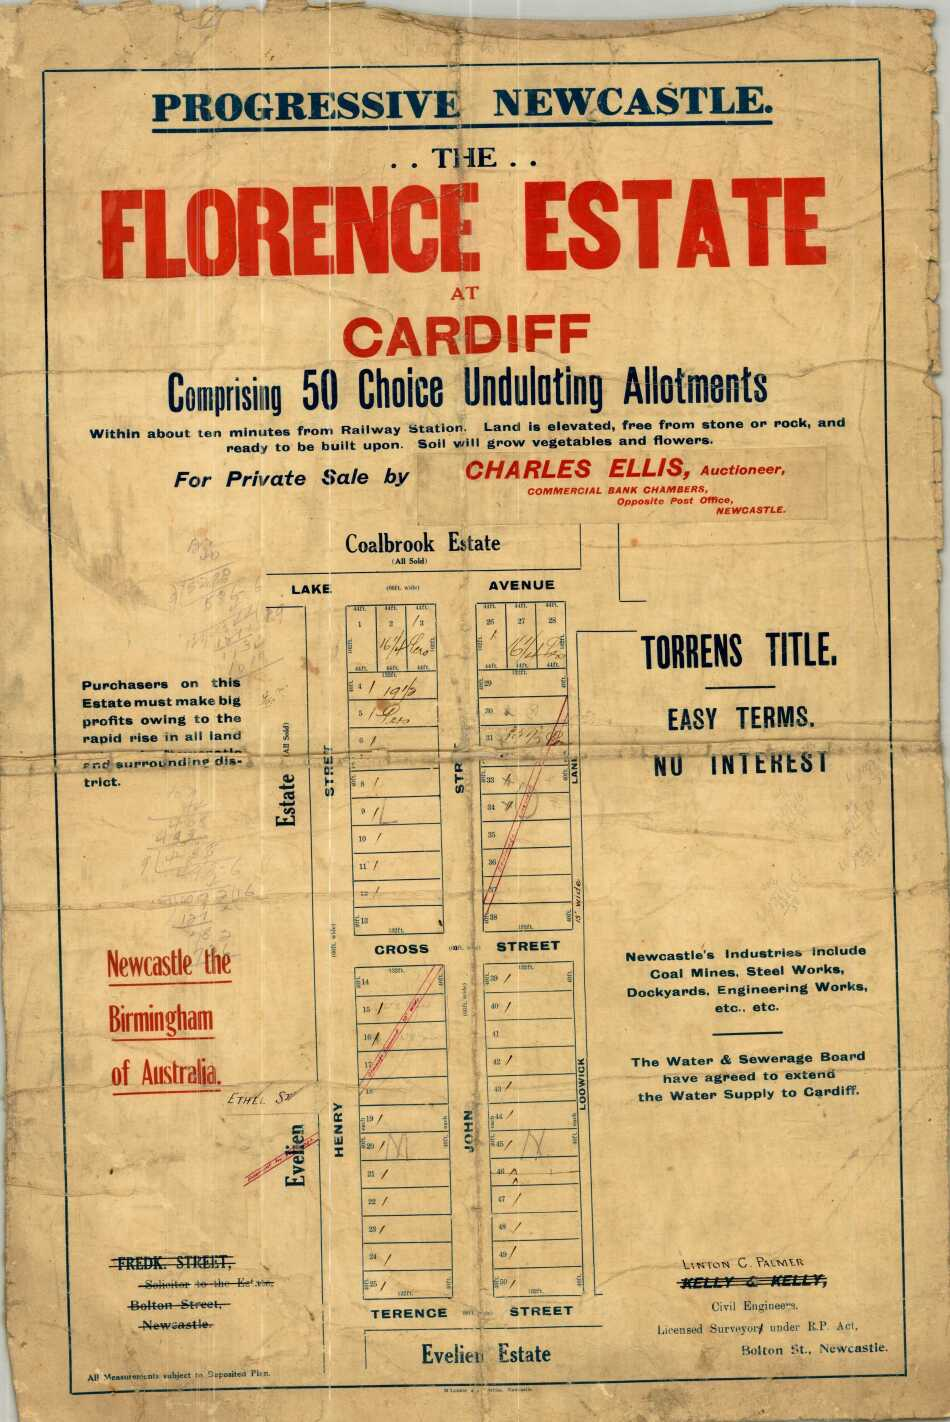 Cardiff: Progressive Newcastle, the Florence Estate at Cardiff : comprising 50 choice undulating allotments for private sale by Charles Ellis, Auctioneer